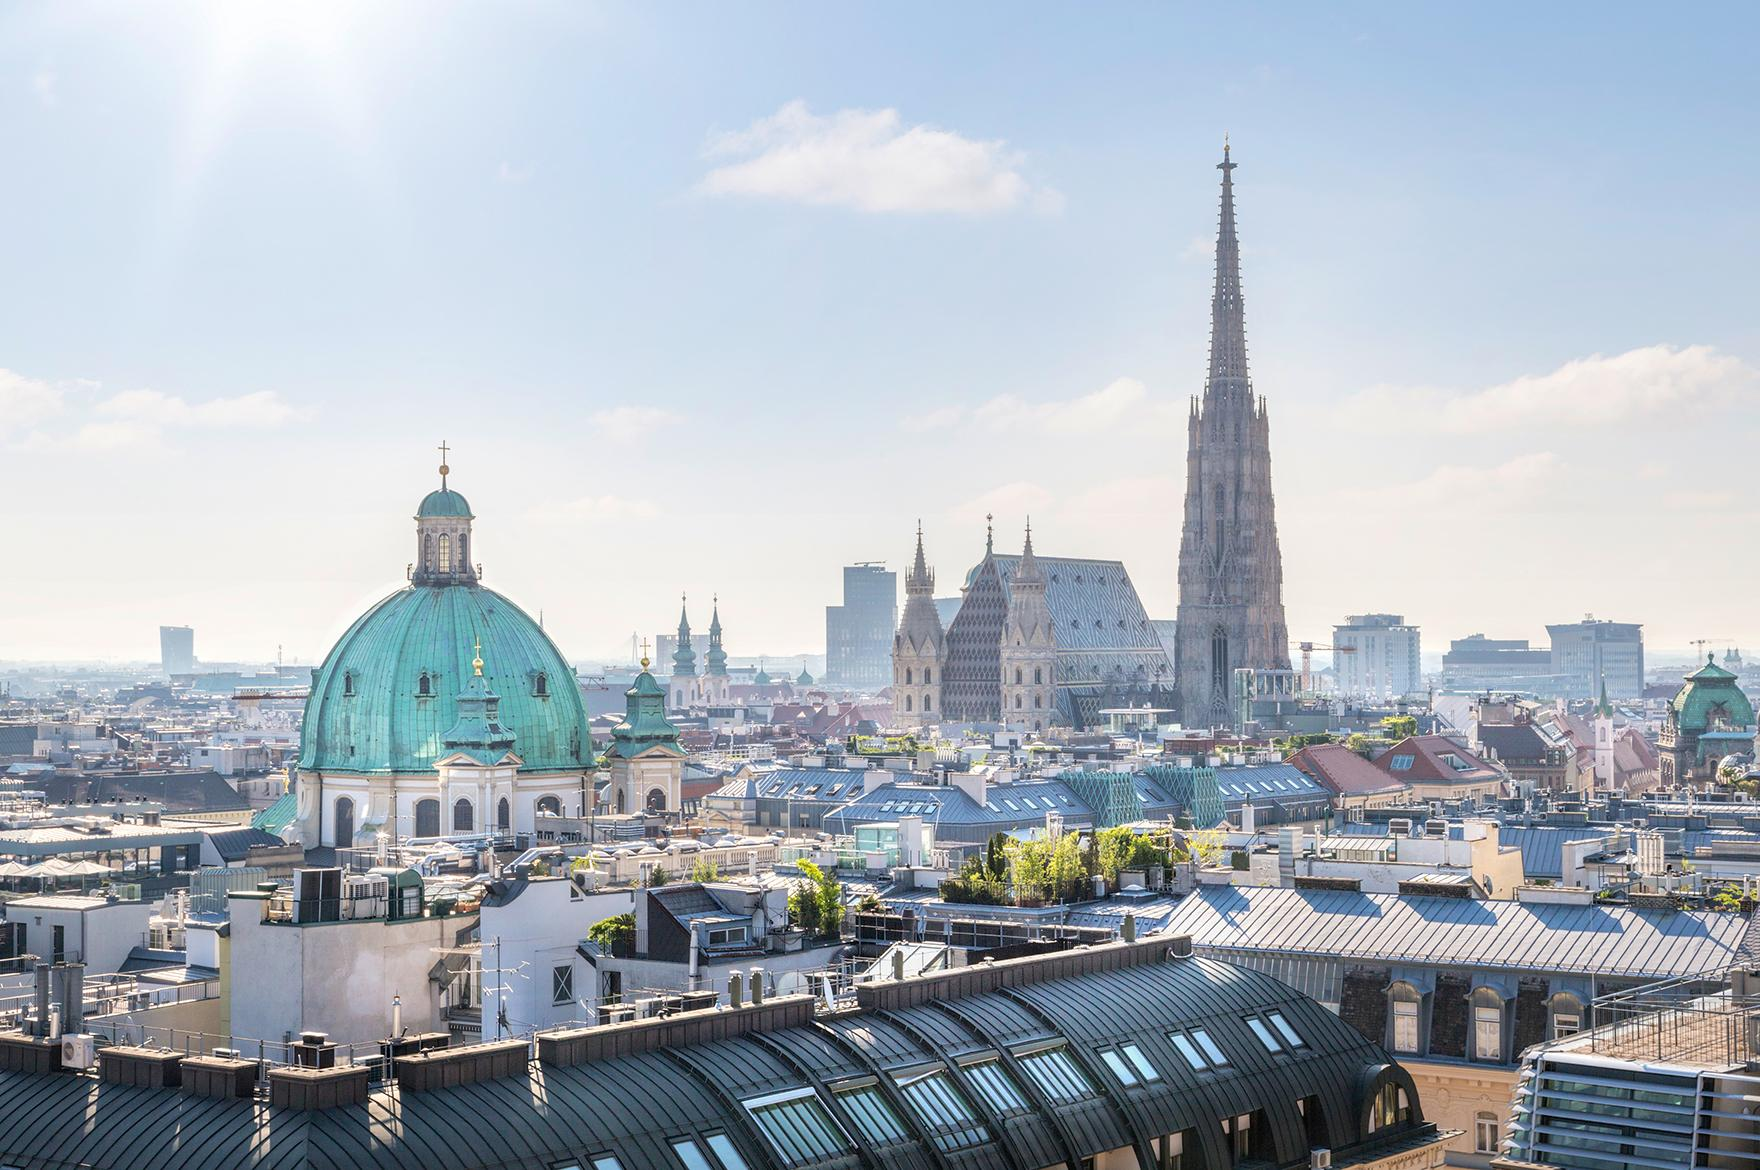 Elevated views of the city of Vienna